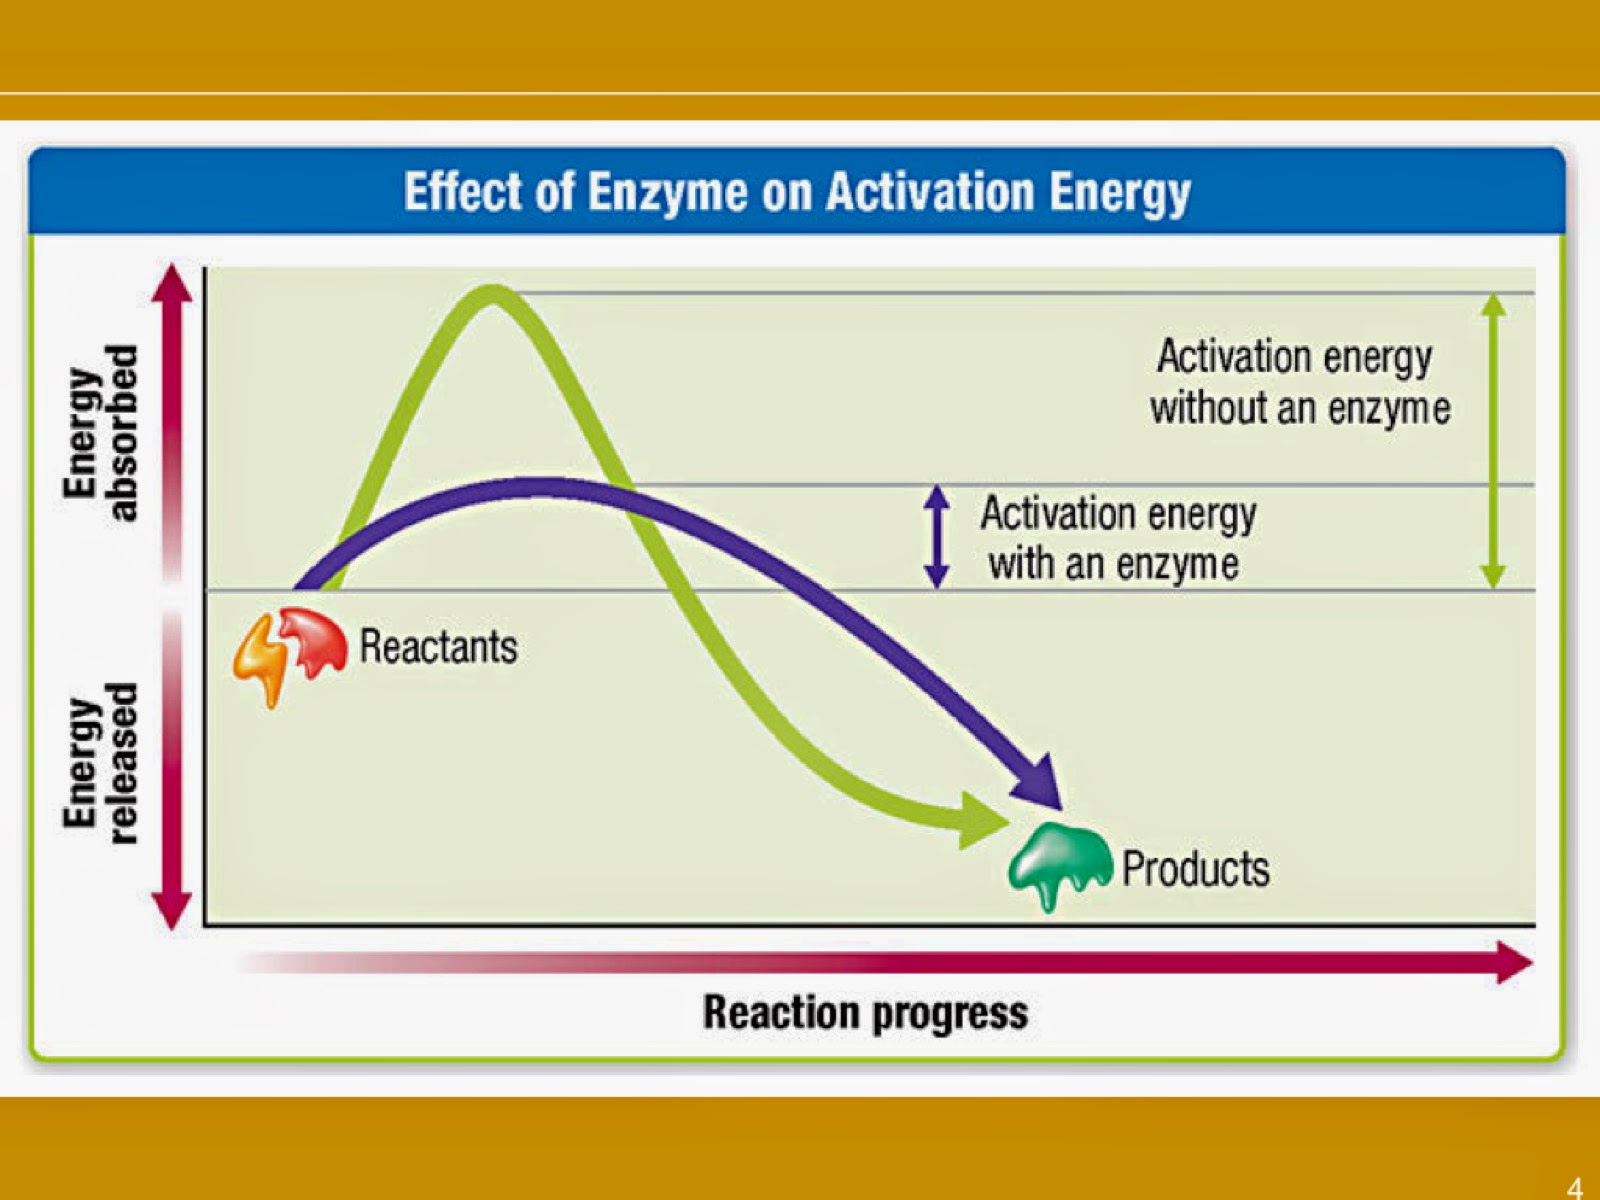 an introduction to enzymes The chymotrypsin enzyme-substrate complex intro to enzymes all living  organisms must be able to self-replicate and catalyze chemical reactions  efficiently.